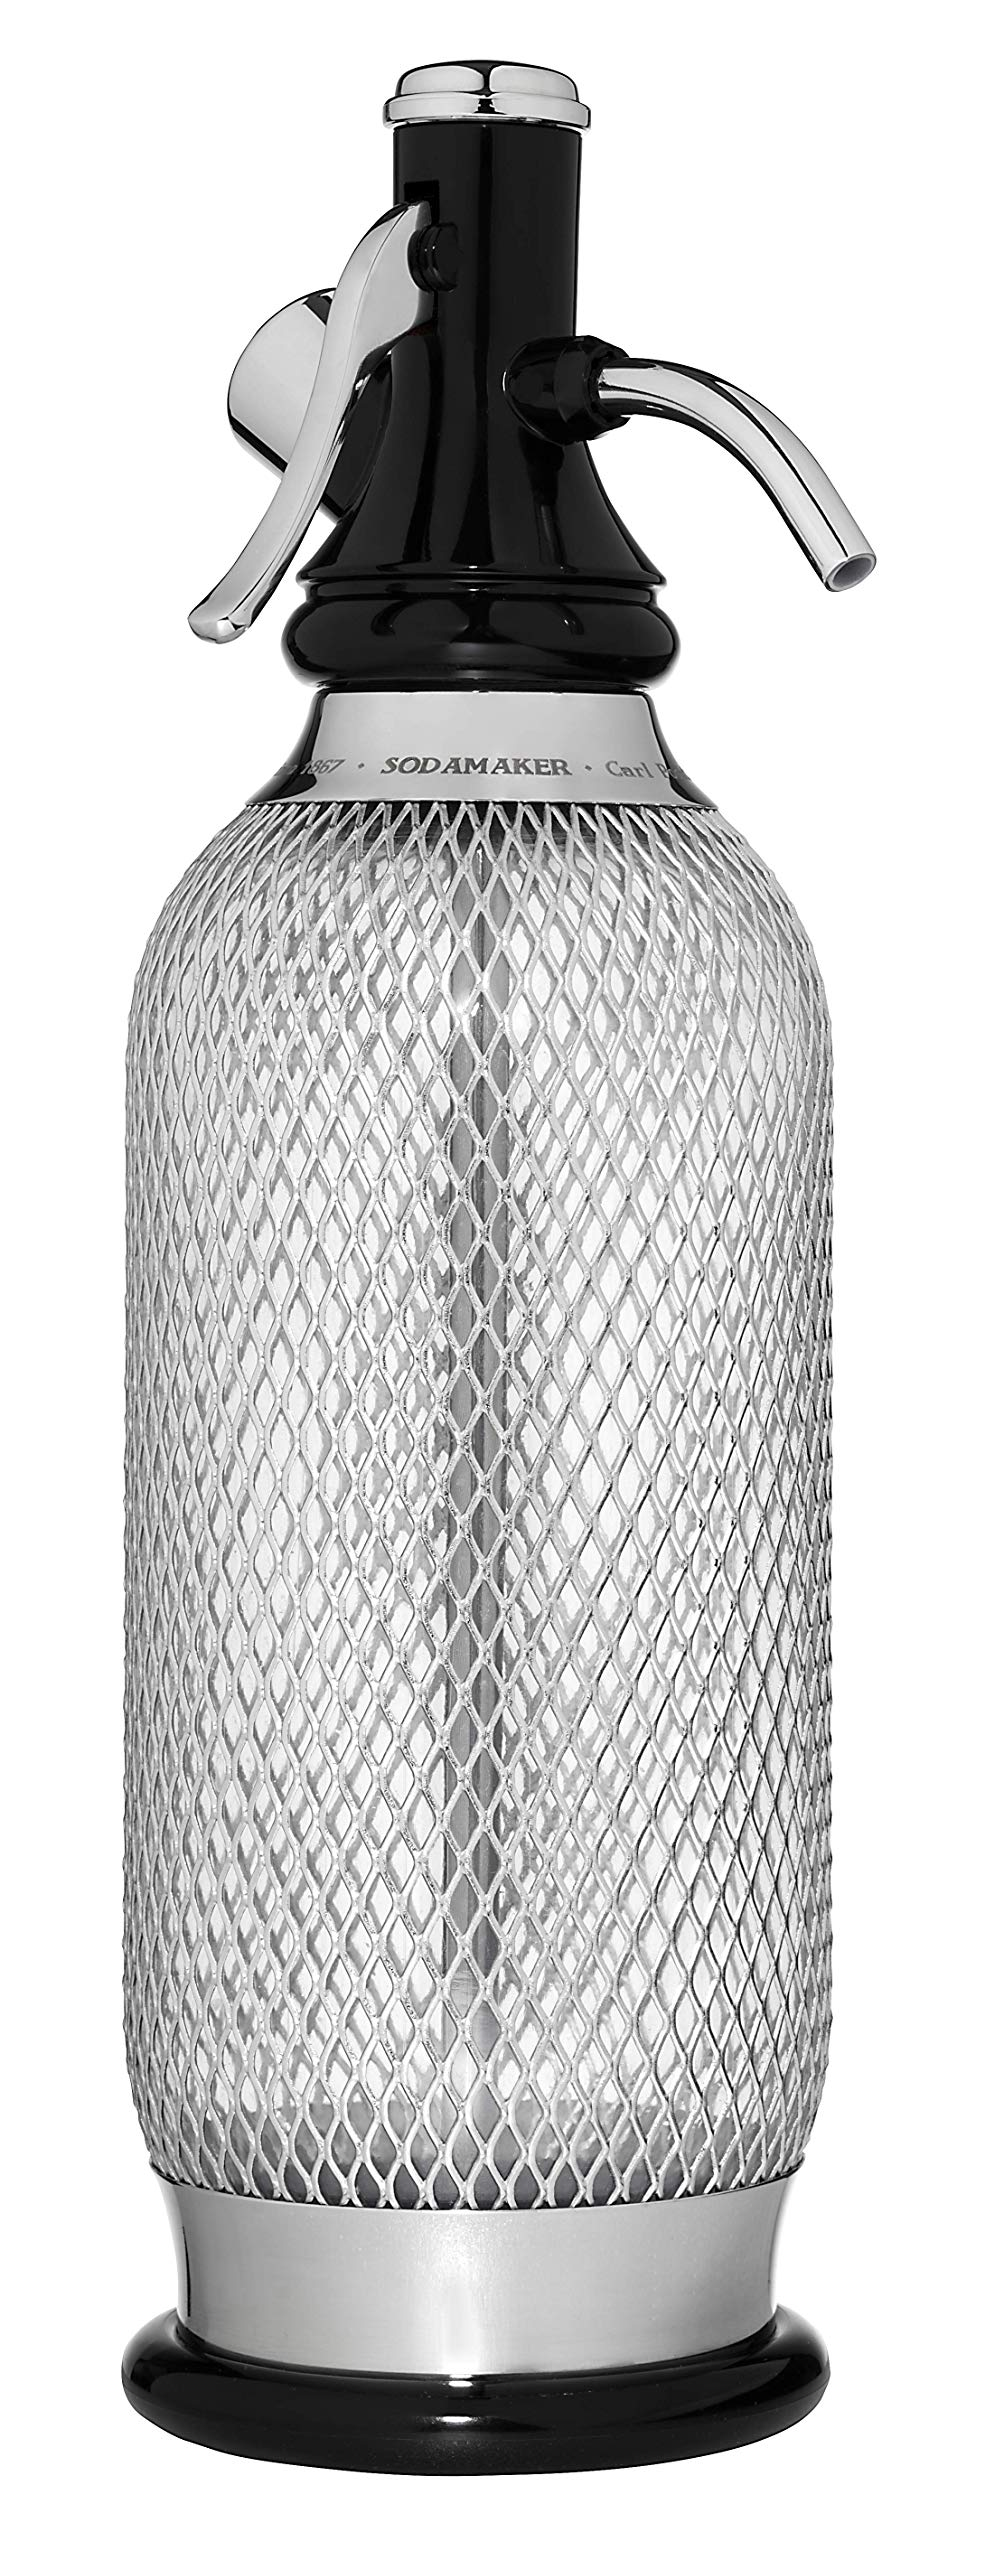 iSi Classic MeshSodamaker for Making Carbonating Beverages, 1 Quart, Stainless Steel